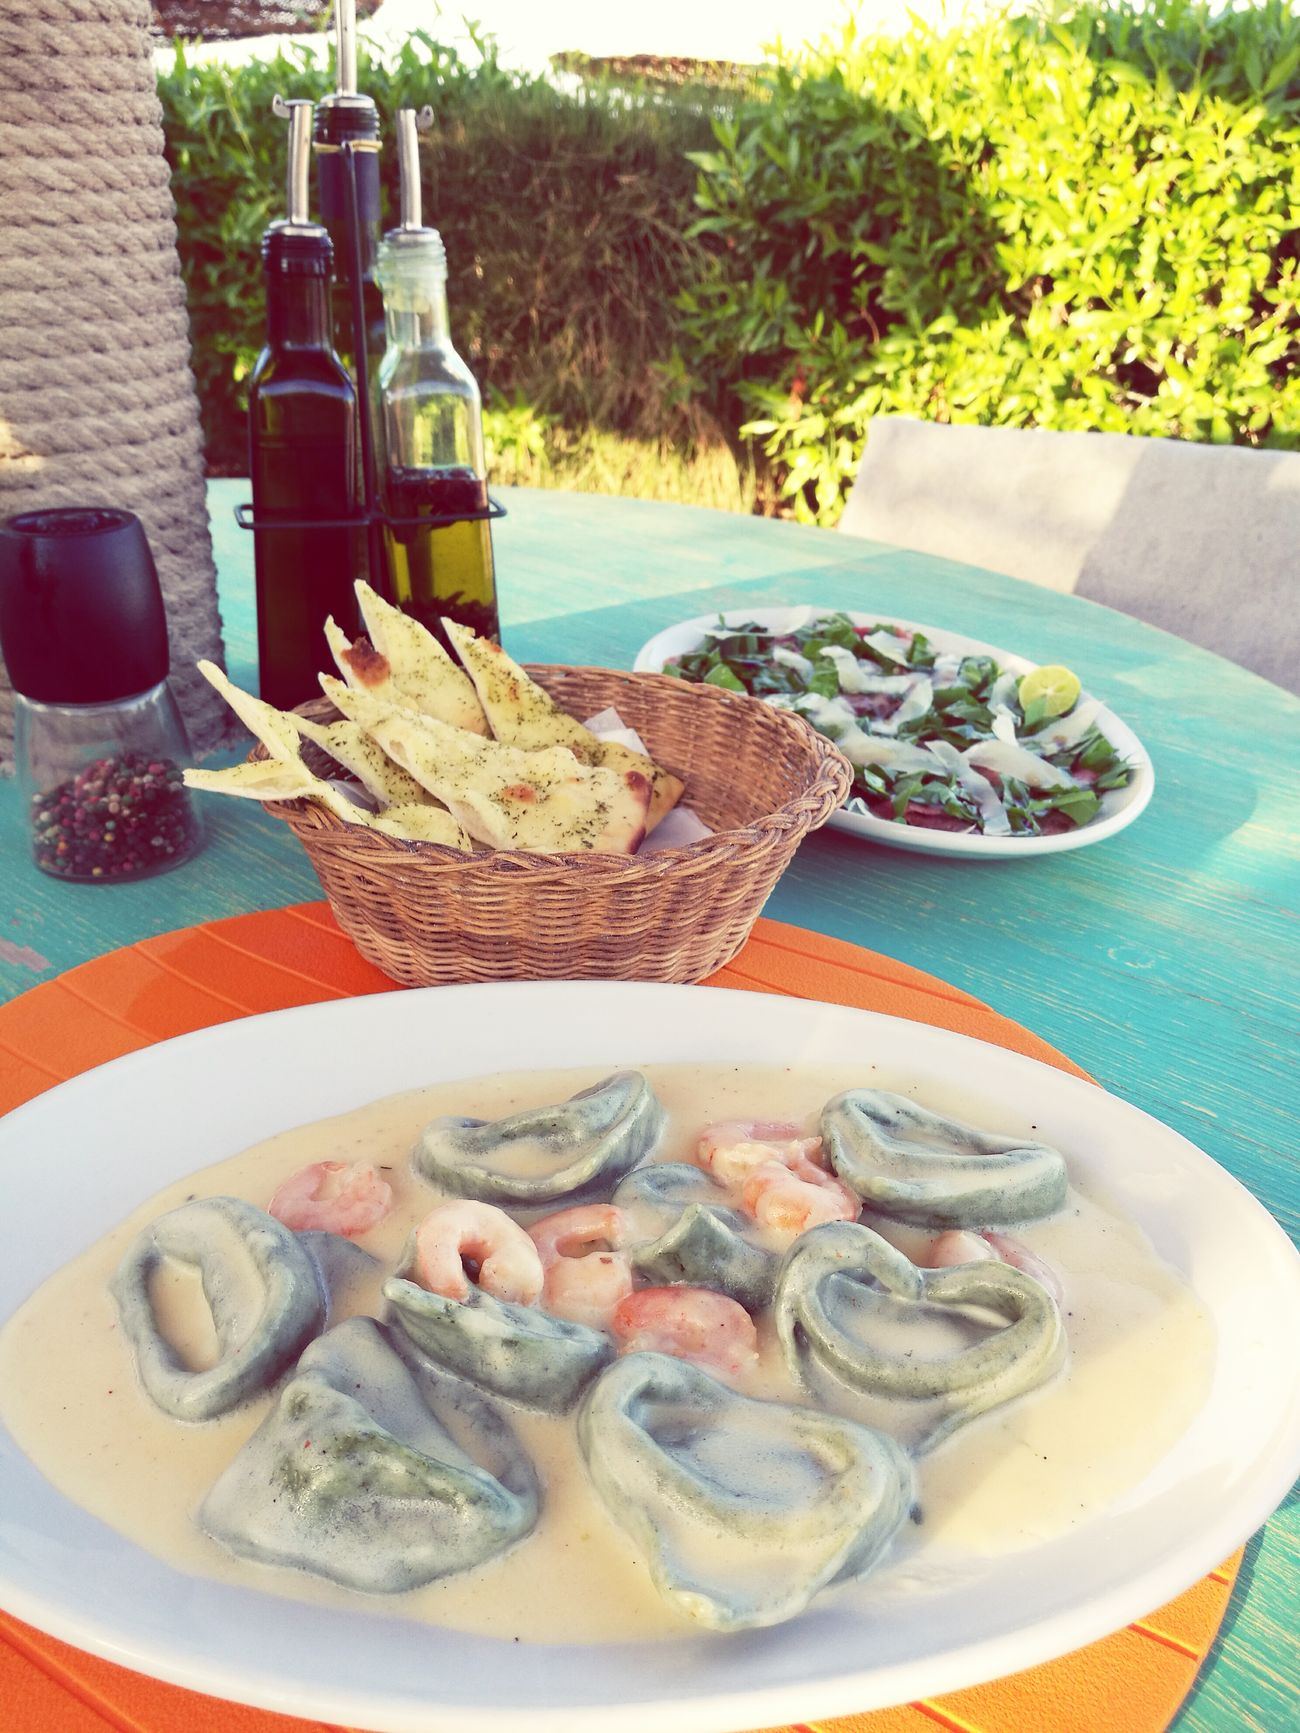 Tortellini  Shrimp Whitesaucepasta Homemadepasta Carpaccio Food Foodlove Foodphotography Dahab Dahab Red Sea RedSea Egypt Sinai